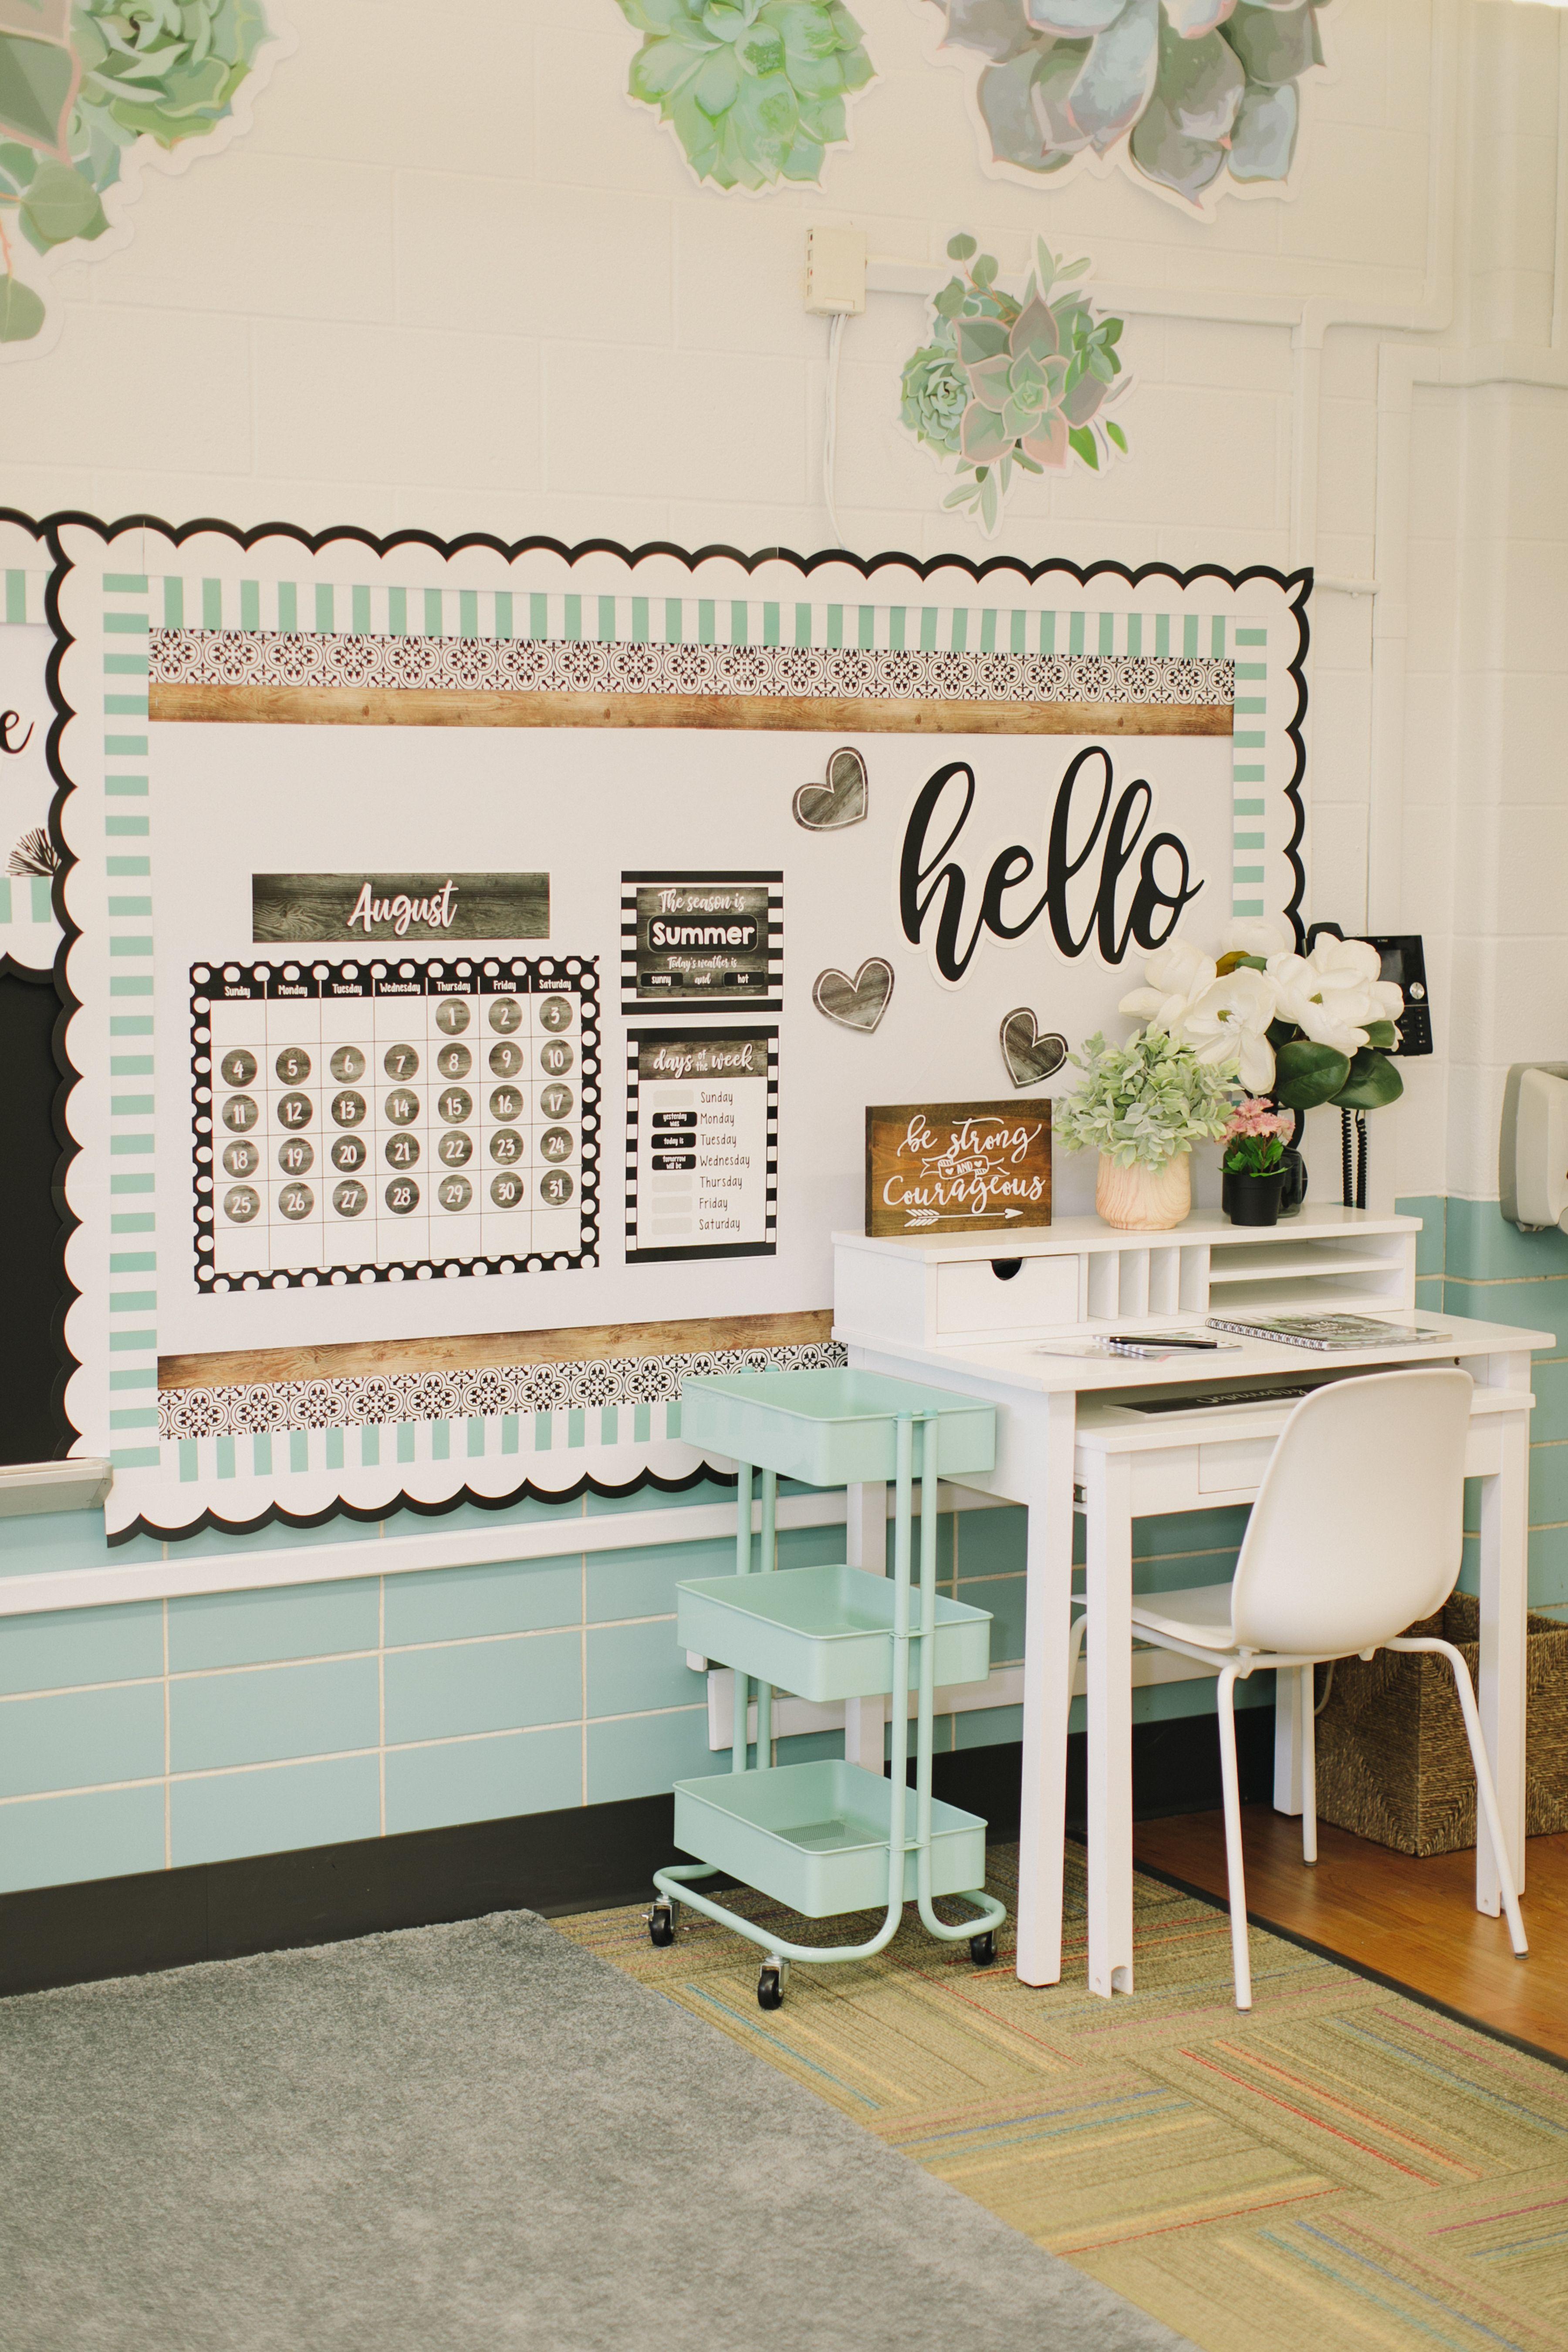 Warm and inviting nature inspired classroom makeover